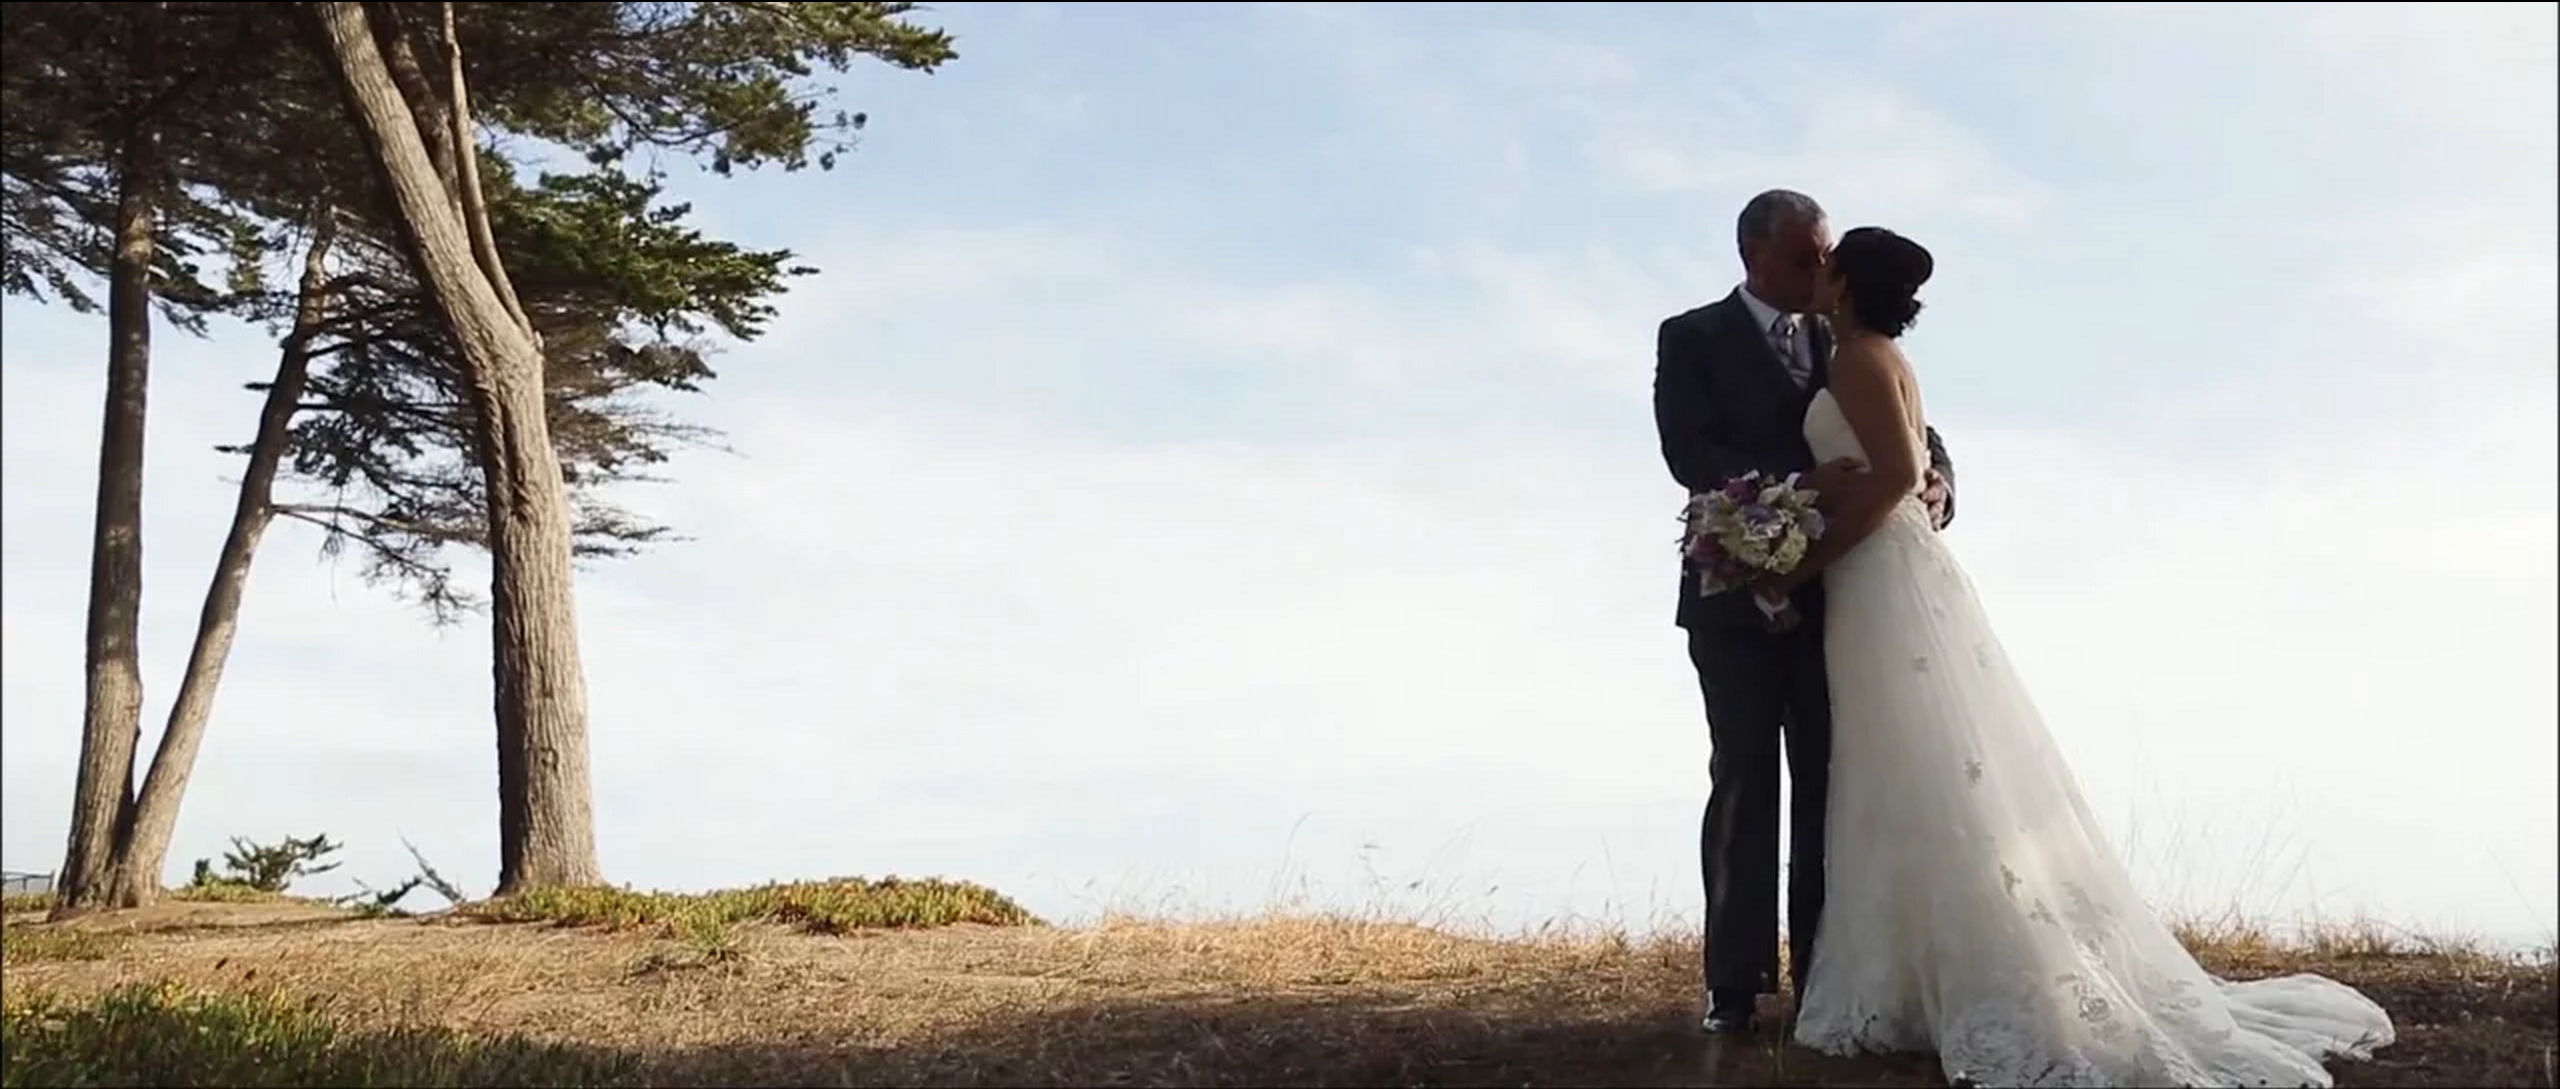 Chris and Tiffaney Seascape wedding videographer, Aptos California